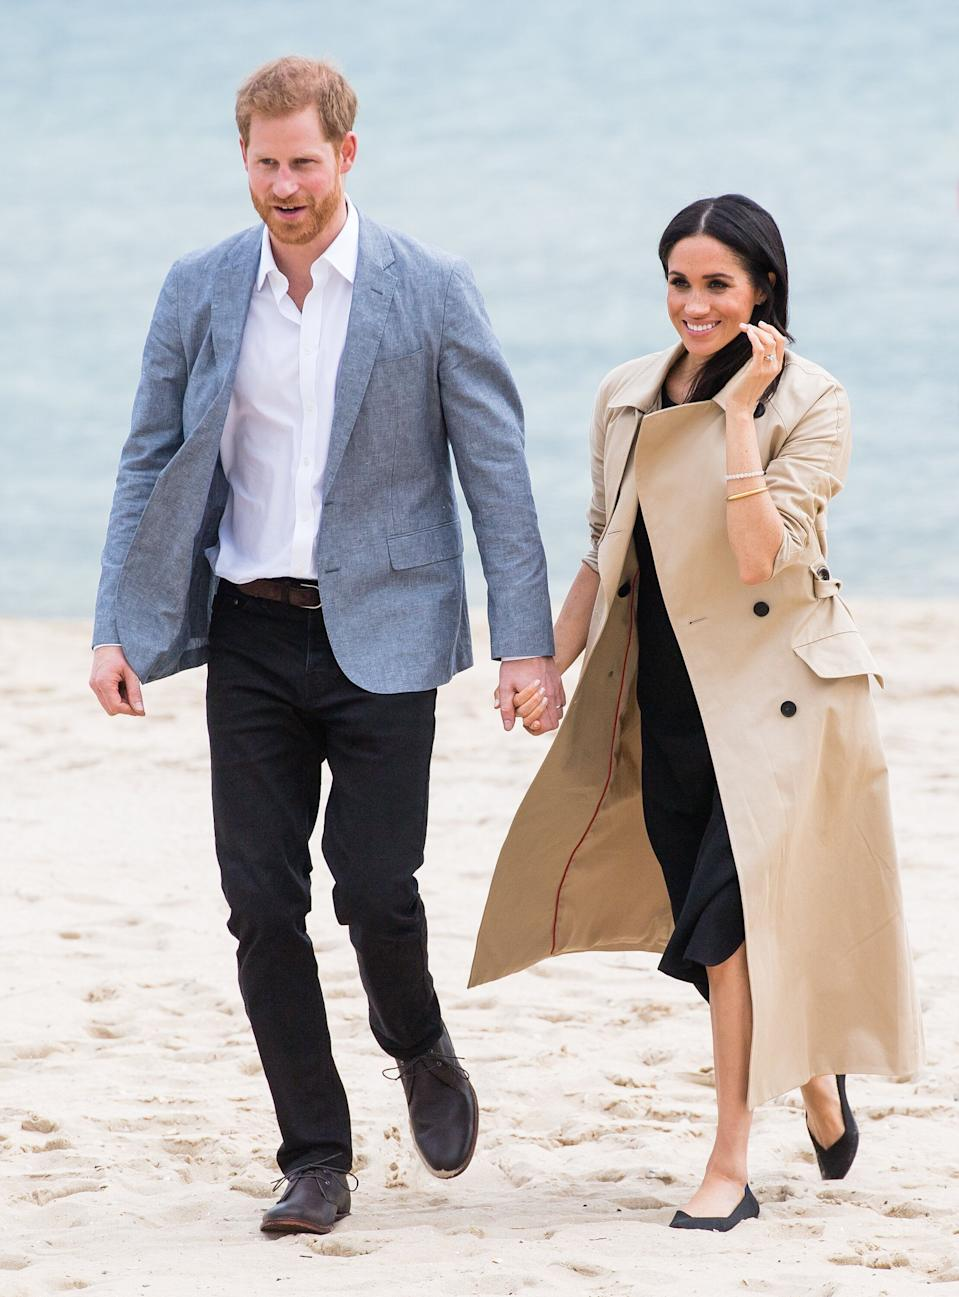 MELBOURNE, AUSTRALIA - OCTOBER 18:  Prince Harry, Duke of Sussex and Meghan, Duchess of Sussex visit South Melbourne Beach on October 18, 2018 in Melbourne, Australia. The Duke and Duchess of Sussex are on their official 16-day Autumn tour visiting cities in Australia, Fiji, Tonga and New Zealand.  (Photo by Samir Hussein/WireImage)